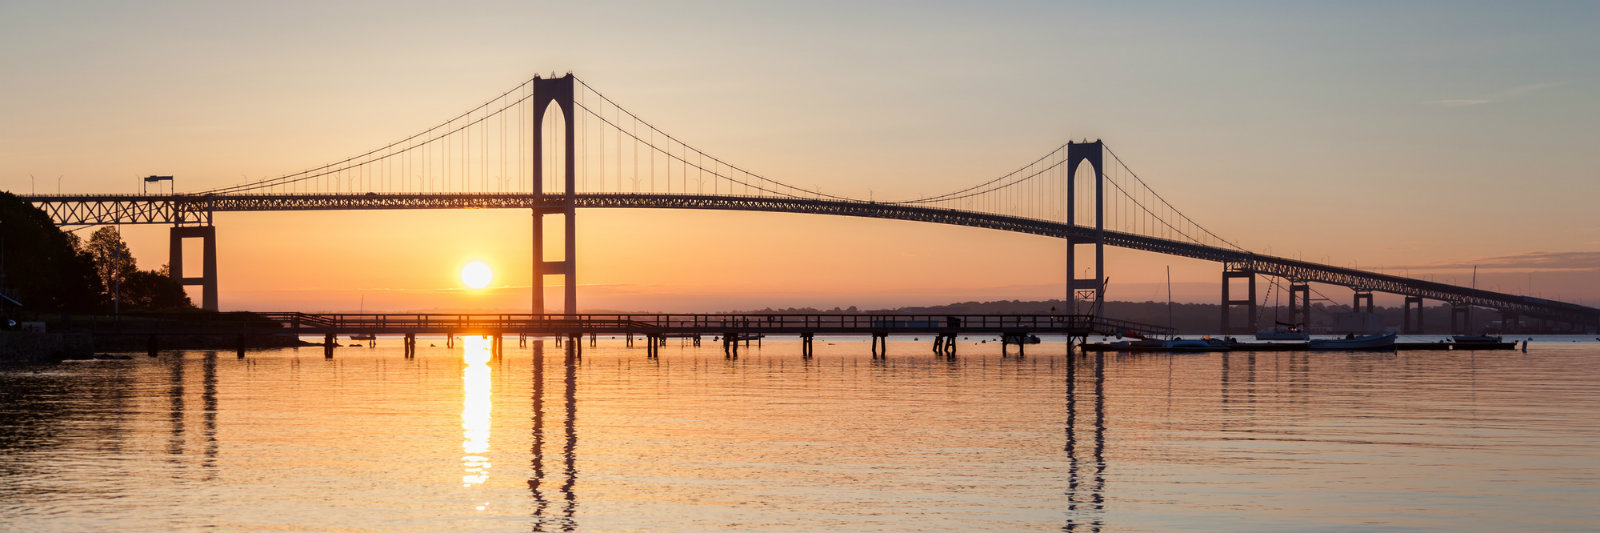 bridge-sunset.jpg